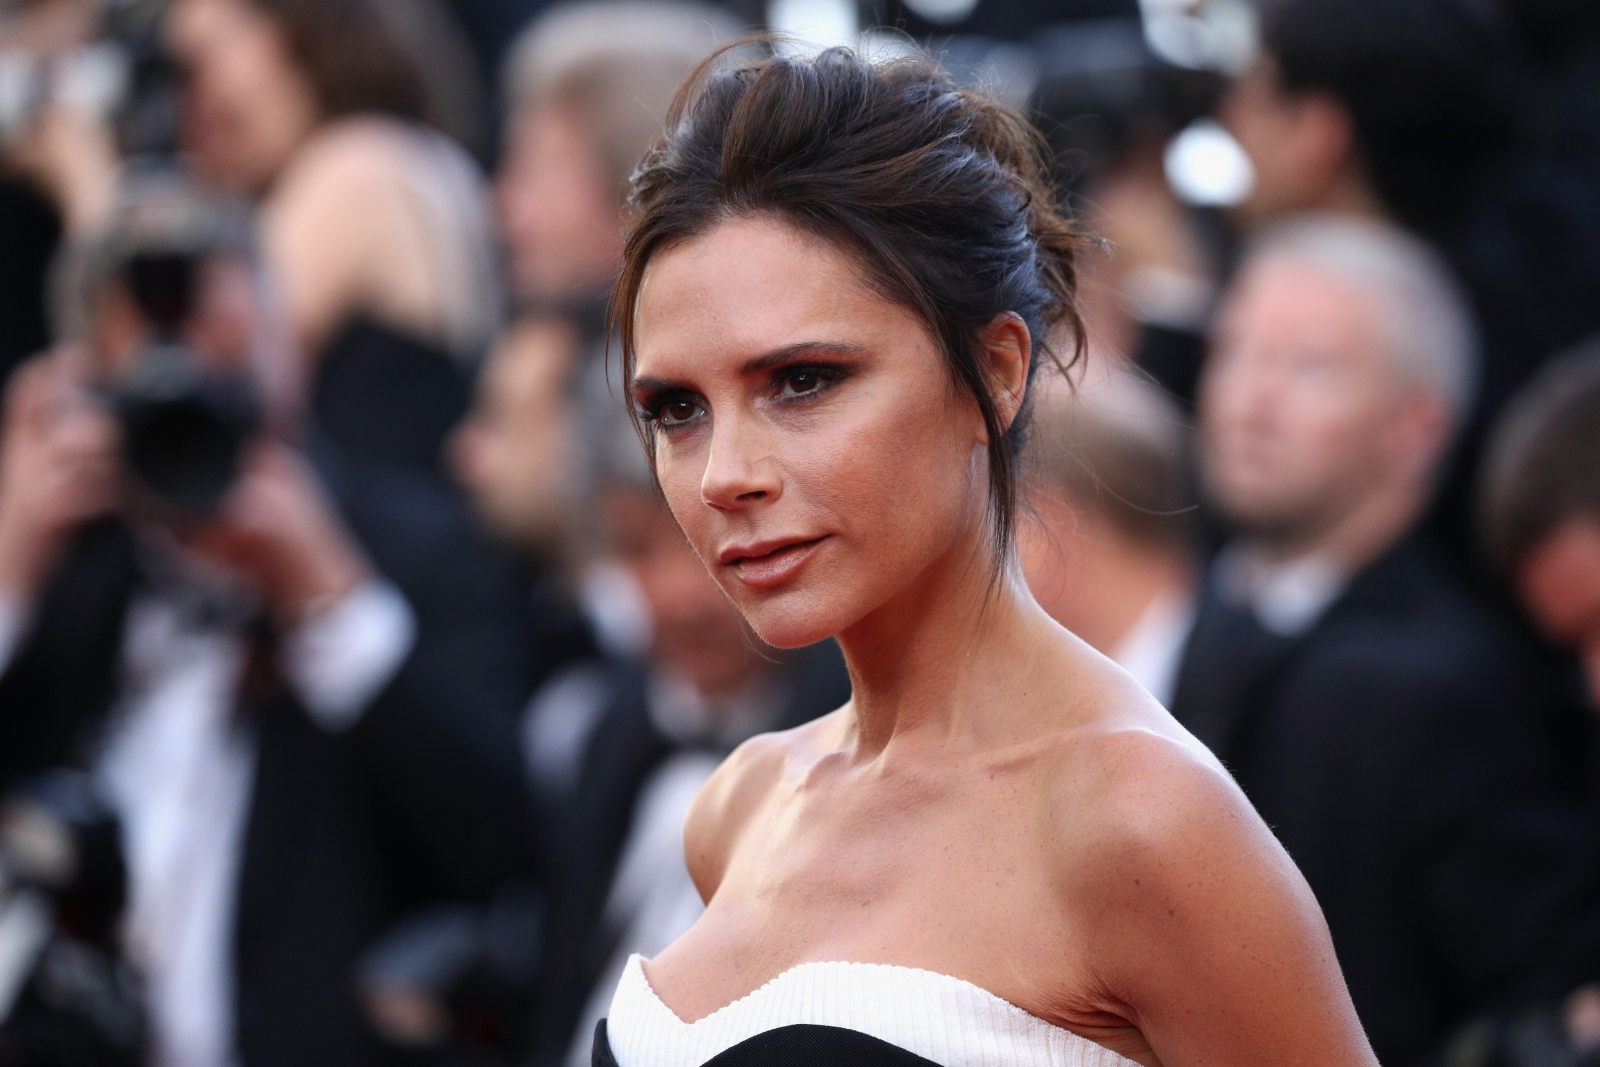 Victoria Beckham May Take Legal Action Against Restaurant Over 'Defamatory' Pizza Ad